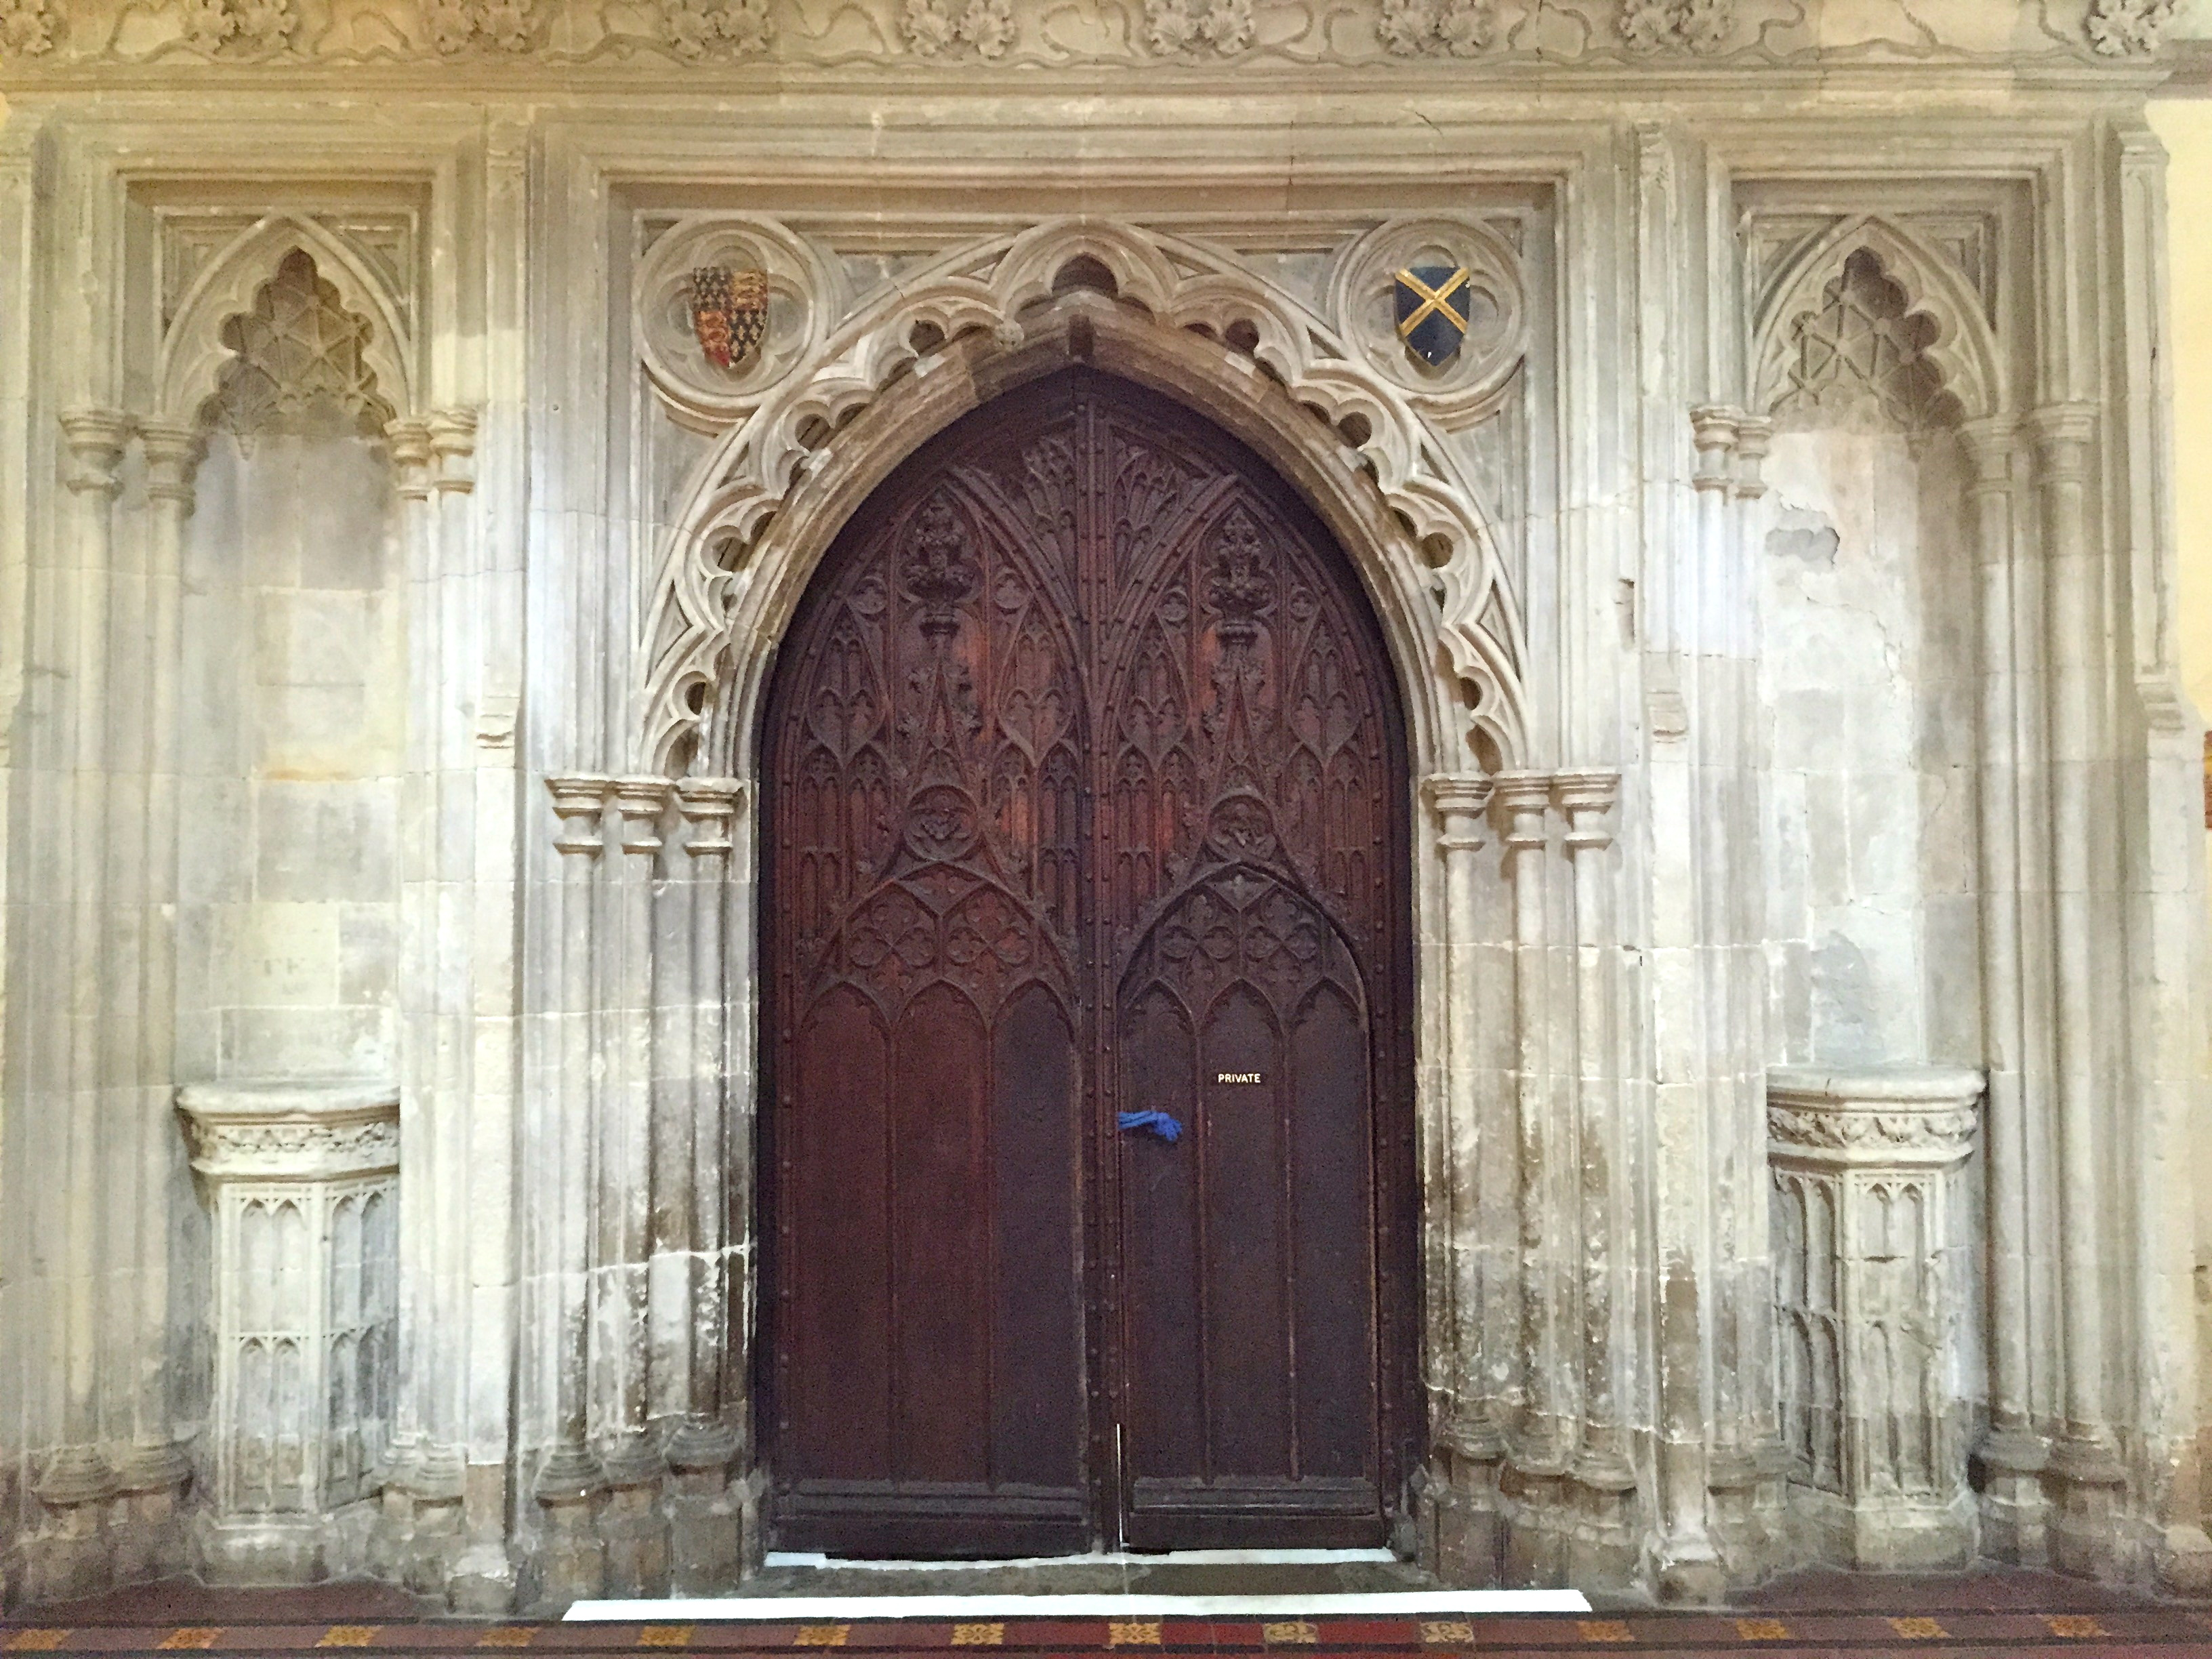 A little while ago I posted about a set of doors at St Albans Cathedral which someone commented u0027were probably the oldestu0027 set of doors to appear in the ... & Thursday Doors u2013 The Bishopu0027s Door St Albans Cathedral | Journey To ...